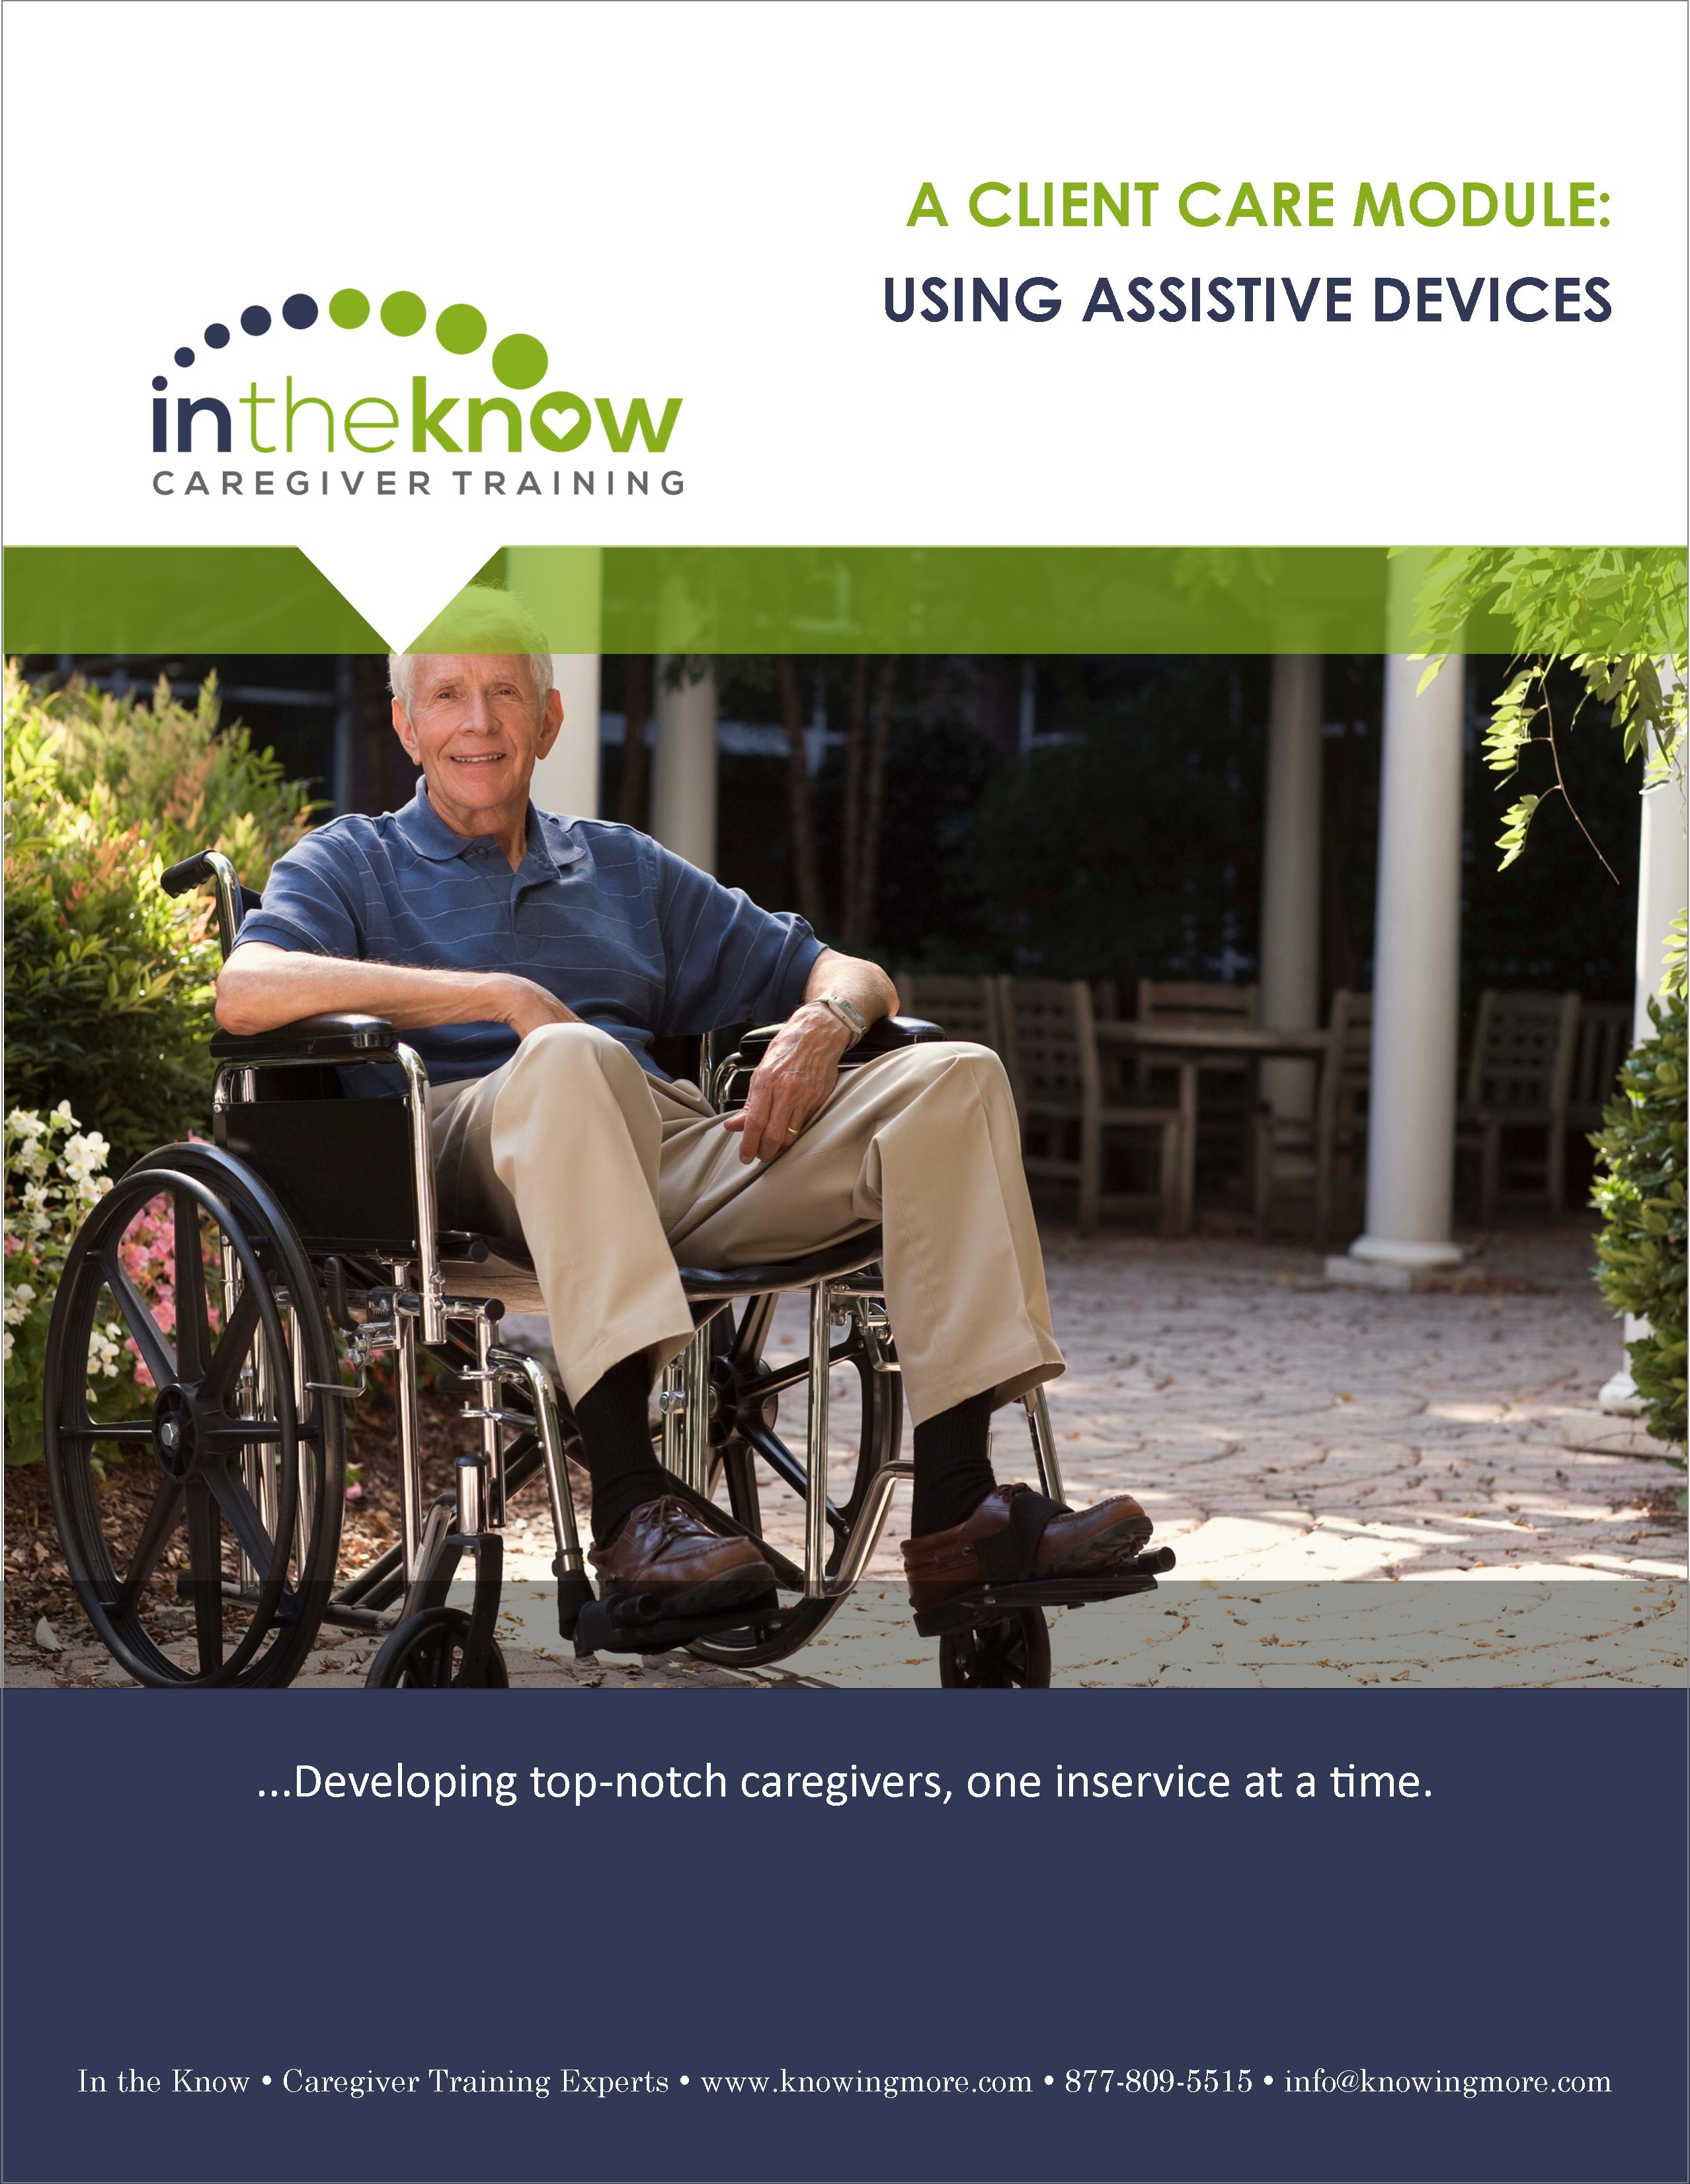 Using20Assistive20Devices-1.jpg